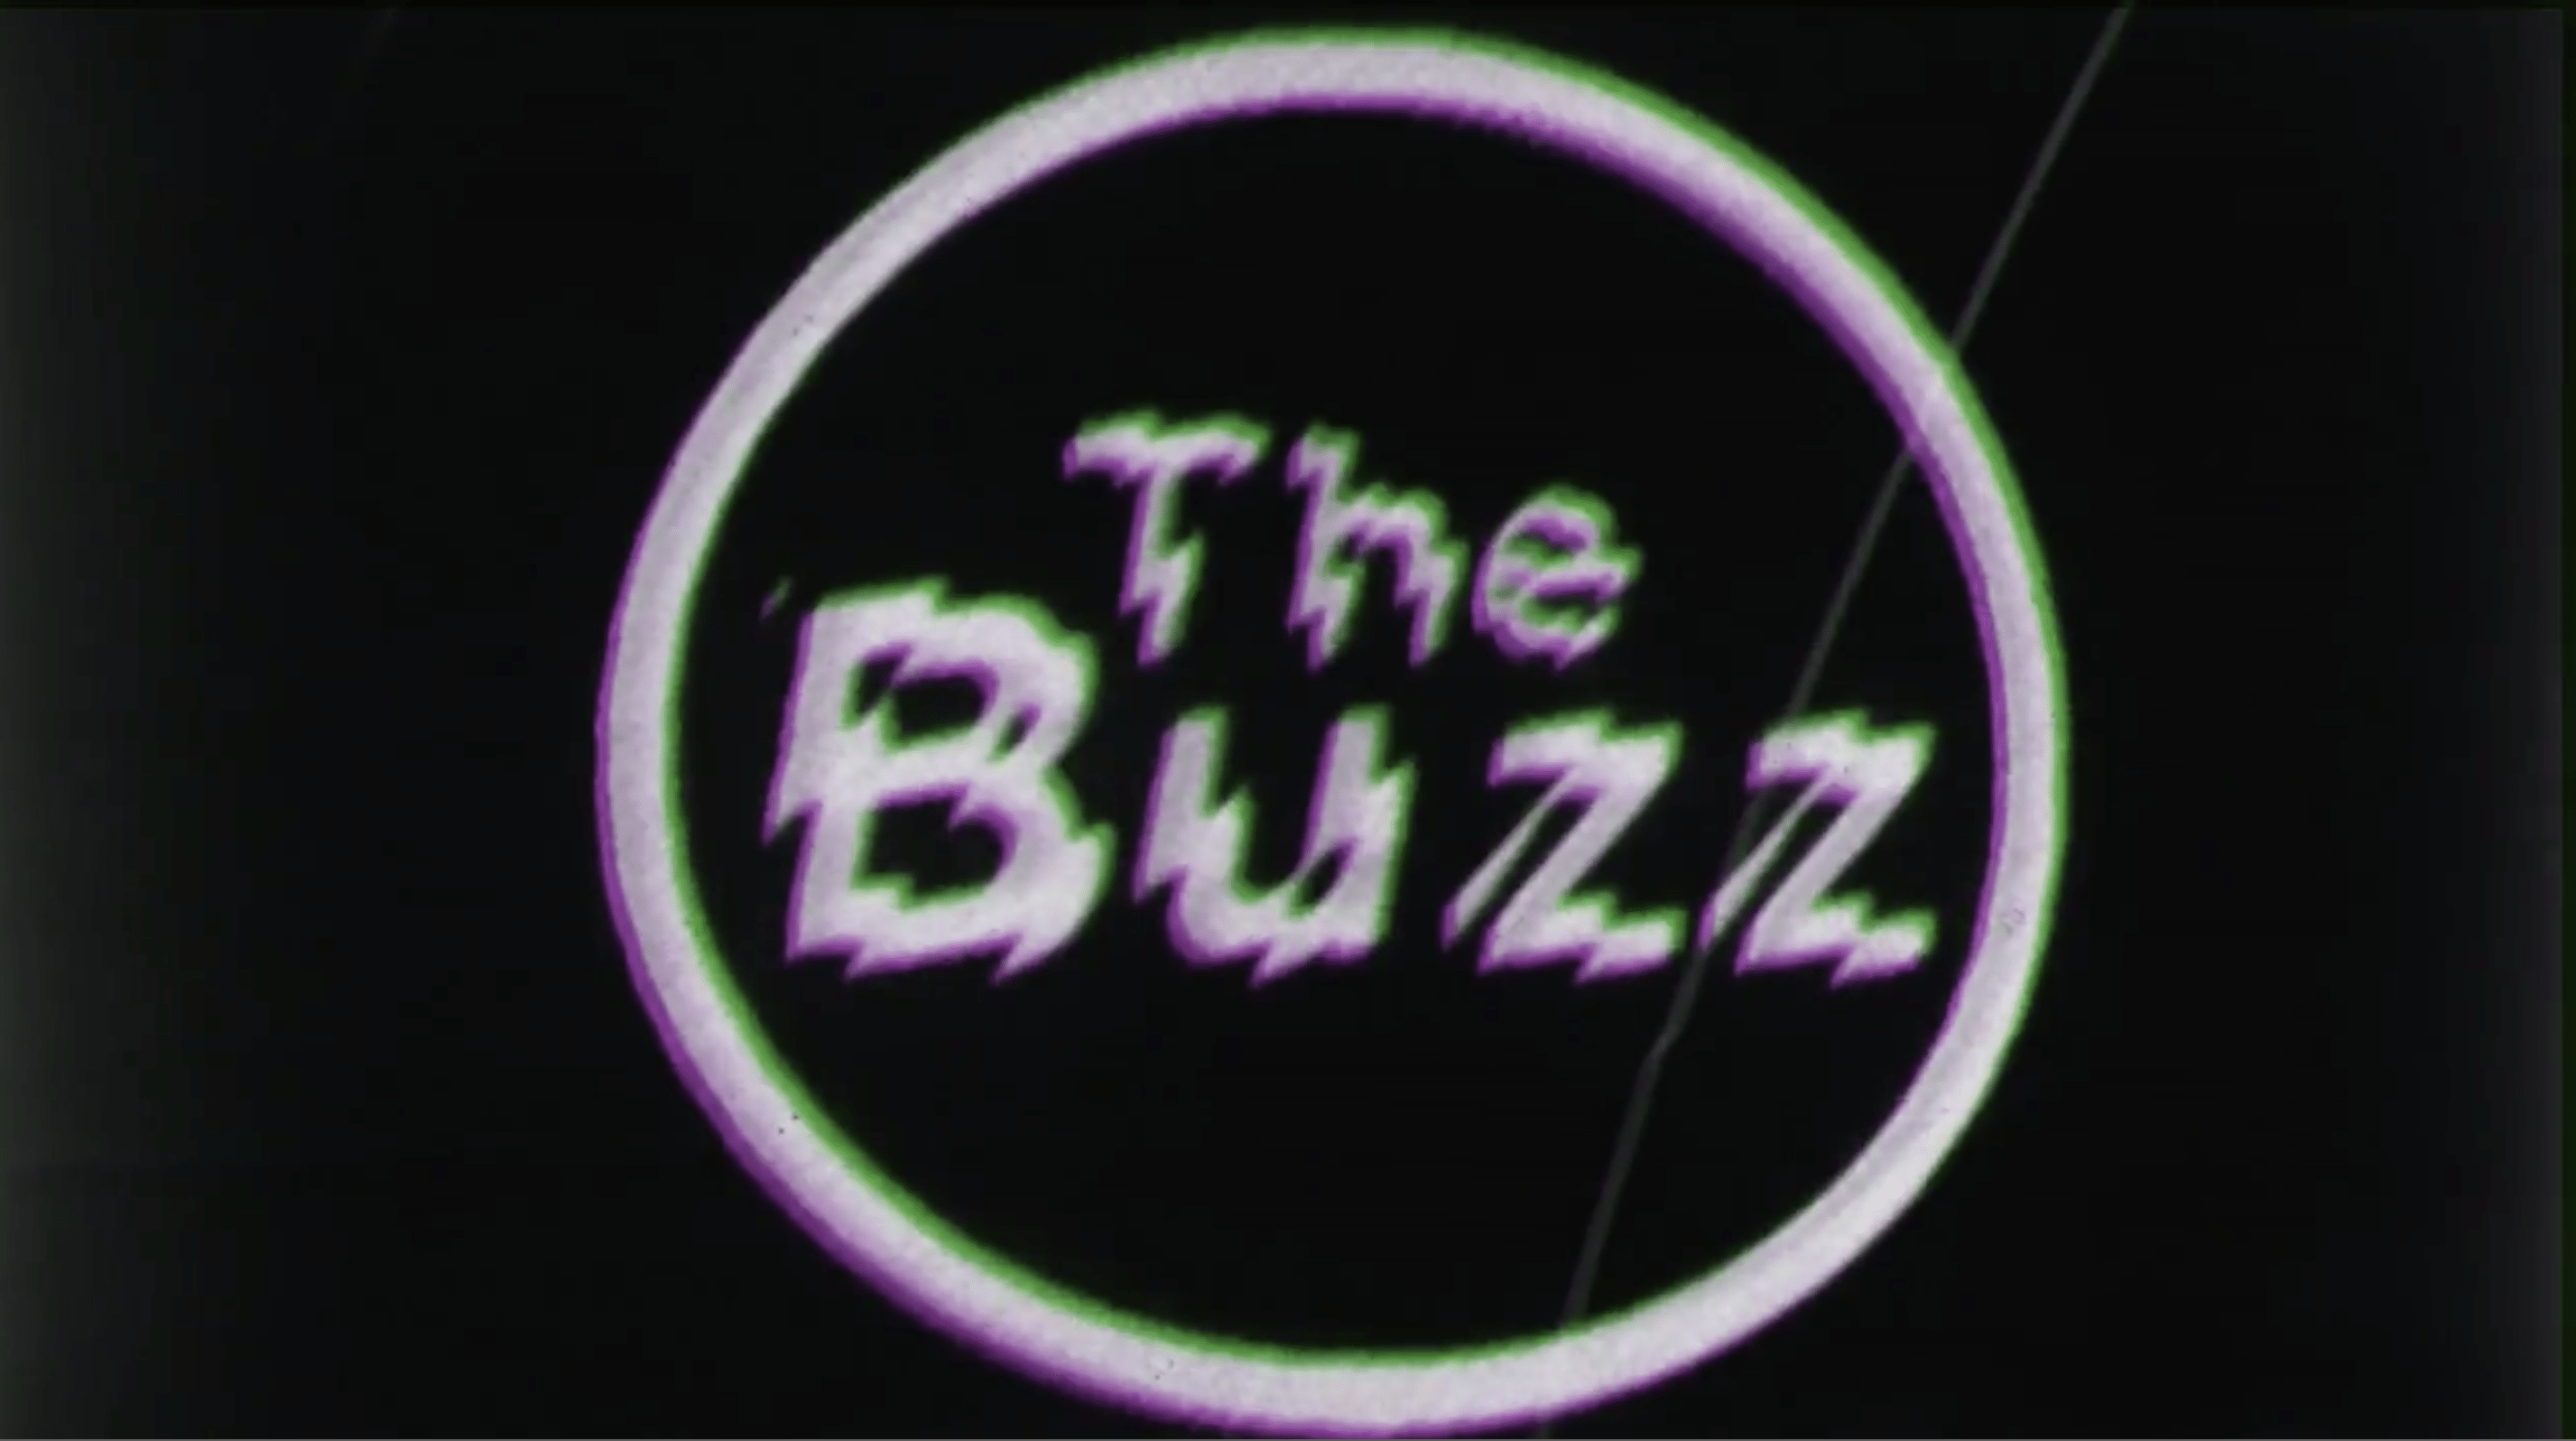 THE PRETENDERS reveal the brand-new video for their current single 'The Buzz' - Watch Now